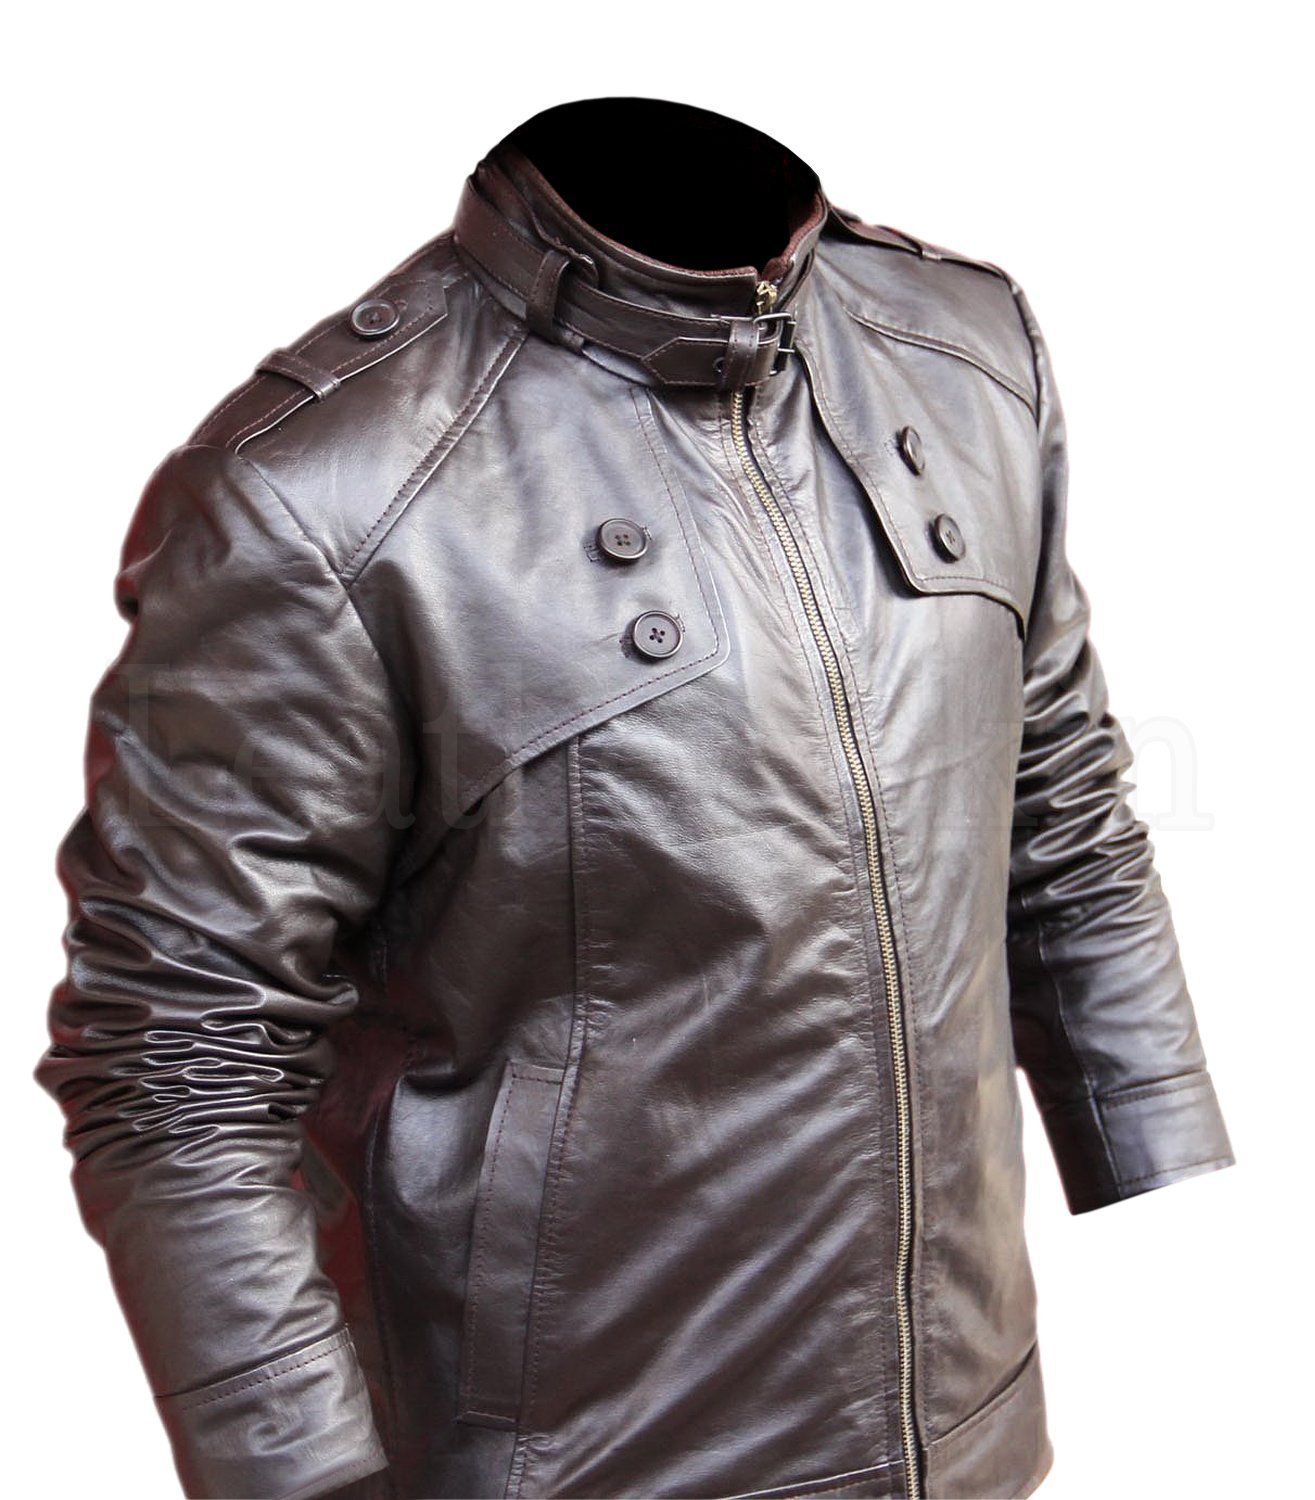 Leather Skin Men Brown Biker Motorcycle Genuine Leather Jacket With Chest Button Jackets Men Fashion Leather Jacket Trendy Jackets [ jpg ]